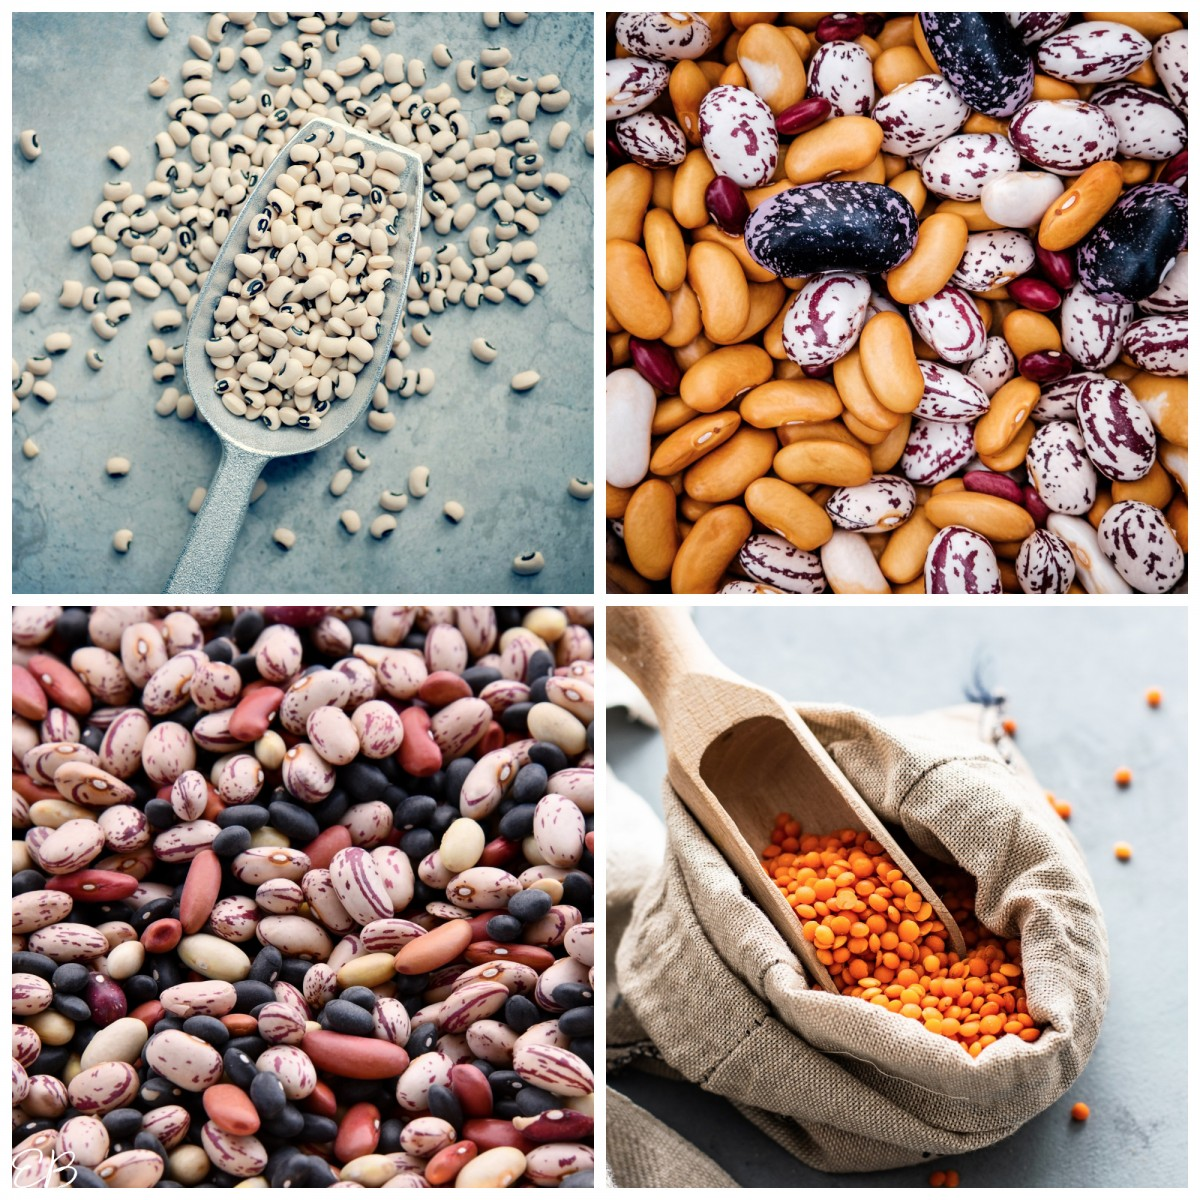 4 kinds of beans collaged